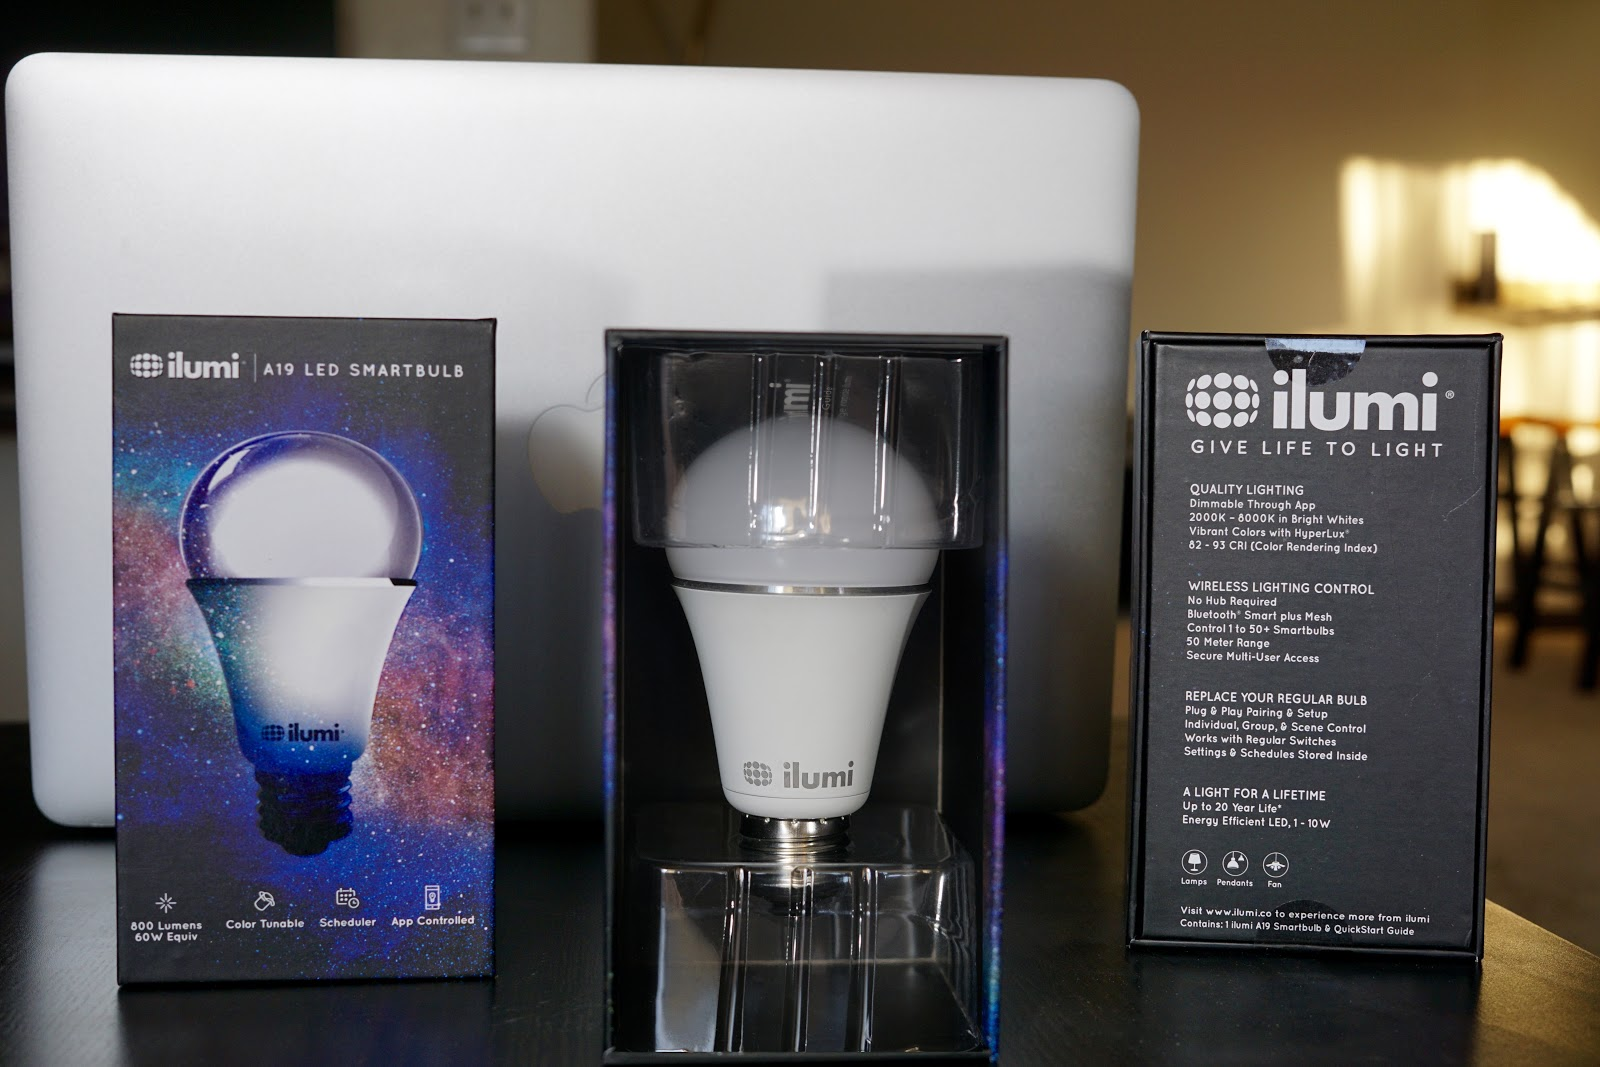 I Backed The New Ilumi Smartbulbs From Kickstarter. The Light Bulbs Are  Plenty Bright, The Color Range Looks Great, And The Bulbs Respond Fast From  The ...